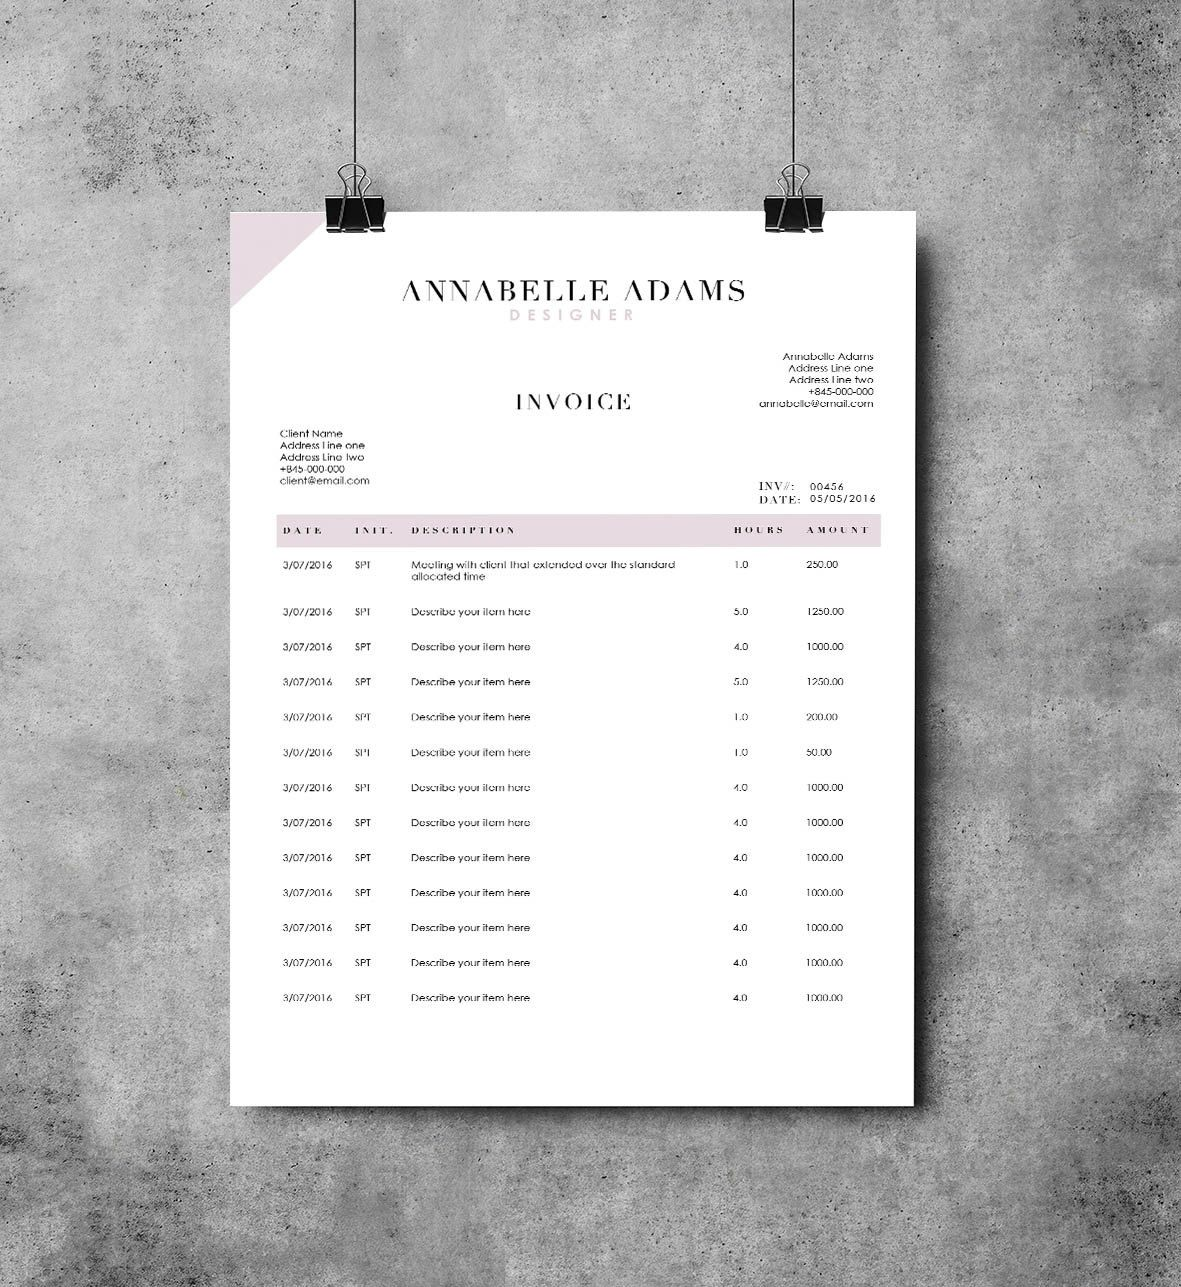 Adams 2 Page Invoice Template | Receipt Template | Invoice Design | MS Word  Invoice By  Invoice Design Template